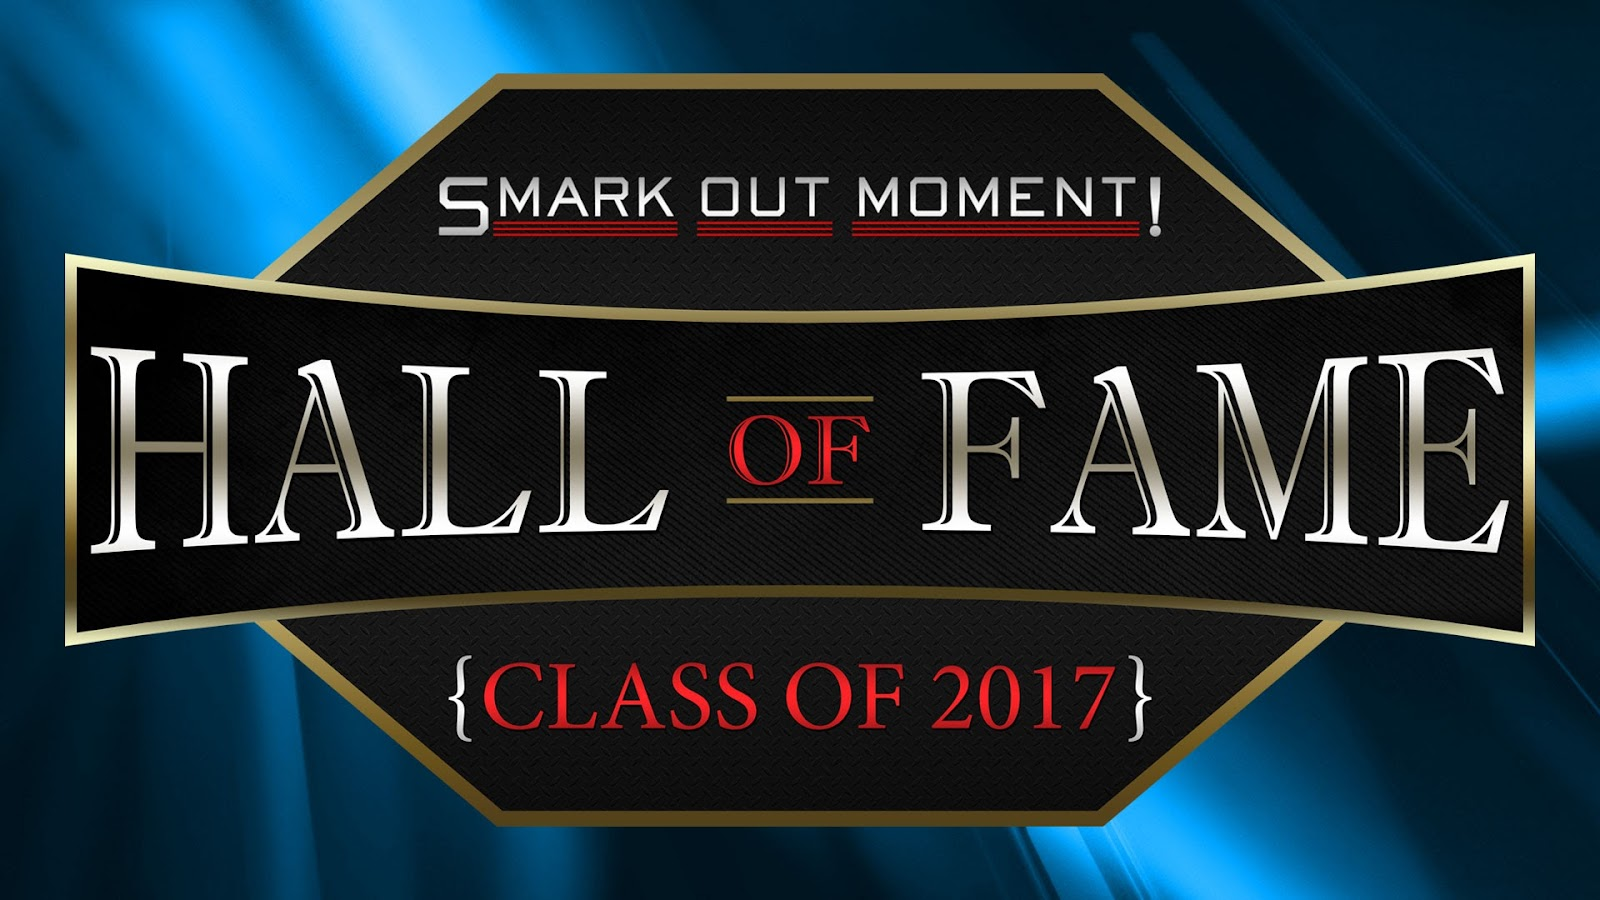 Smack Talk Hall of Fame class of 2017